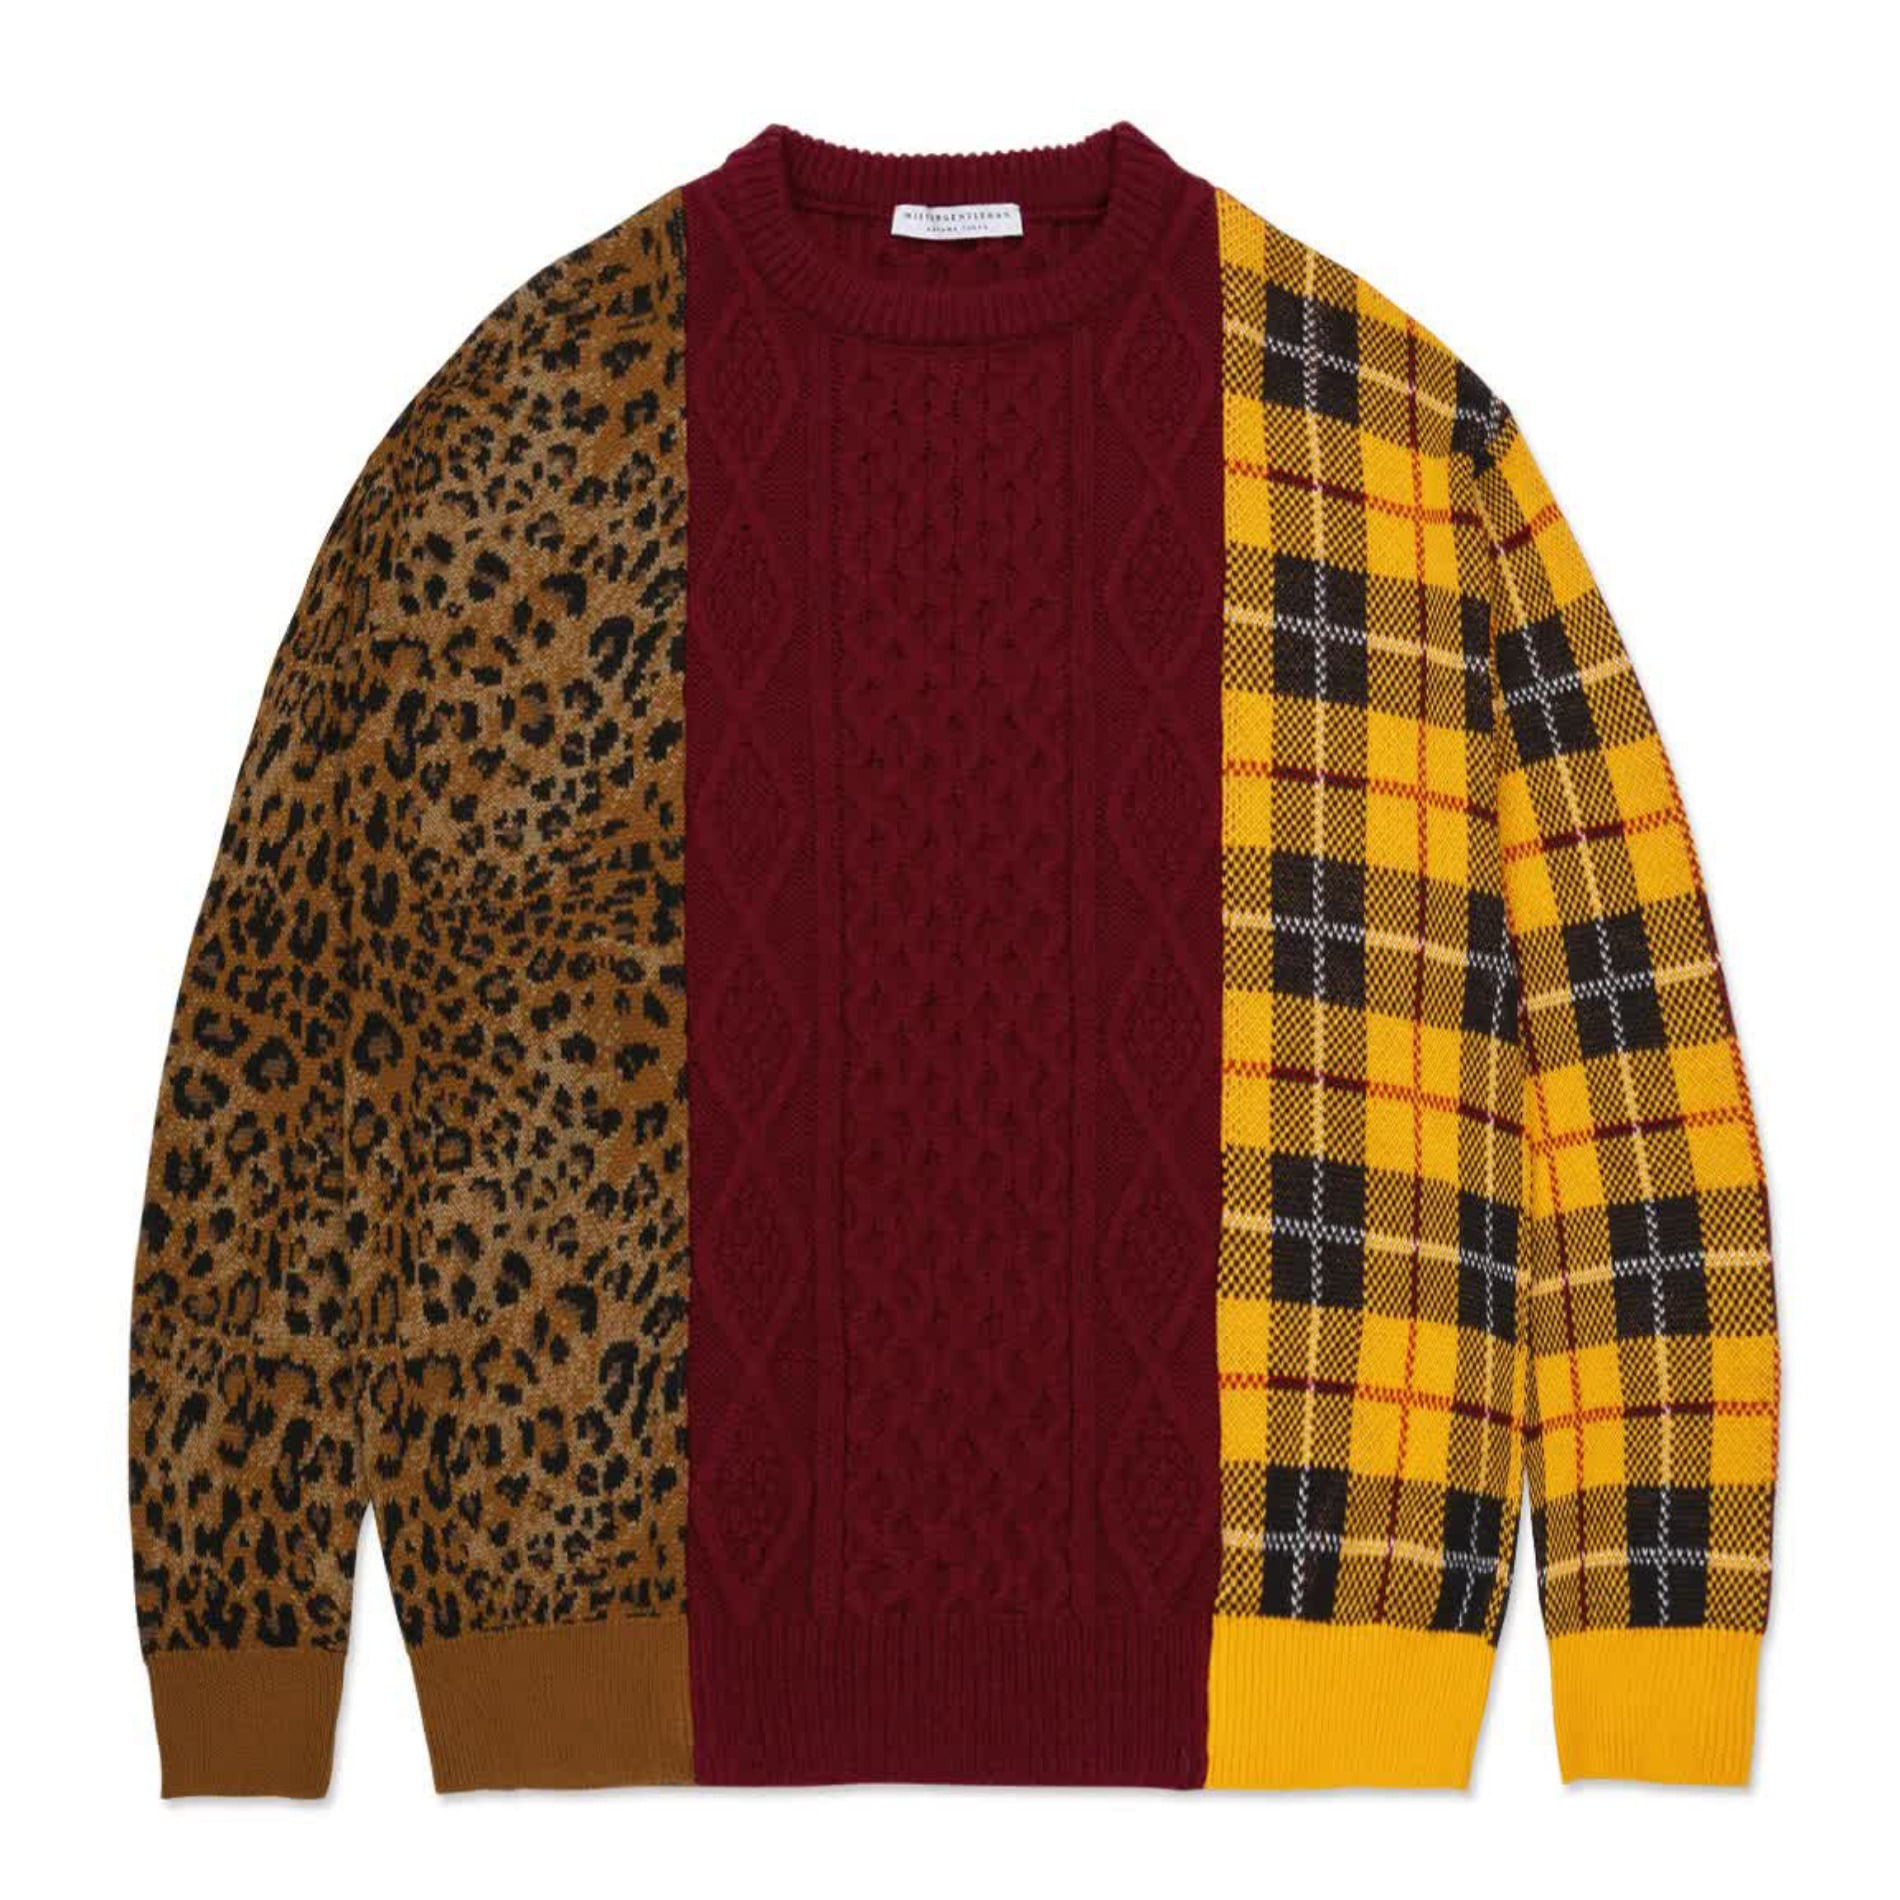 AW20 MISTER GENTLEMAN MIX PATTERN KNIT RED MIX